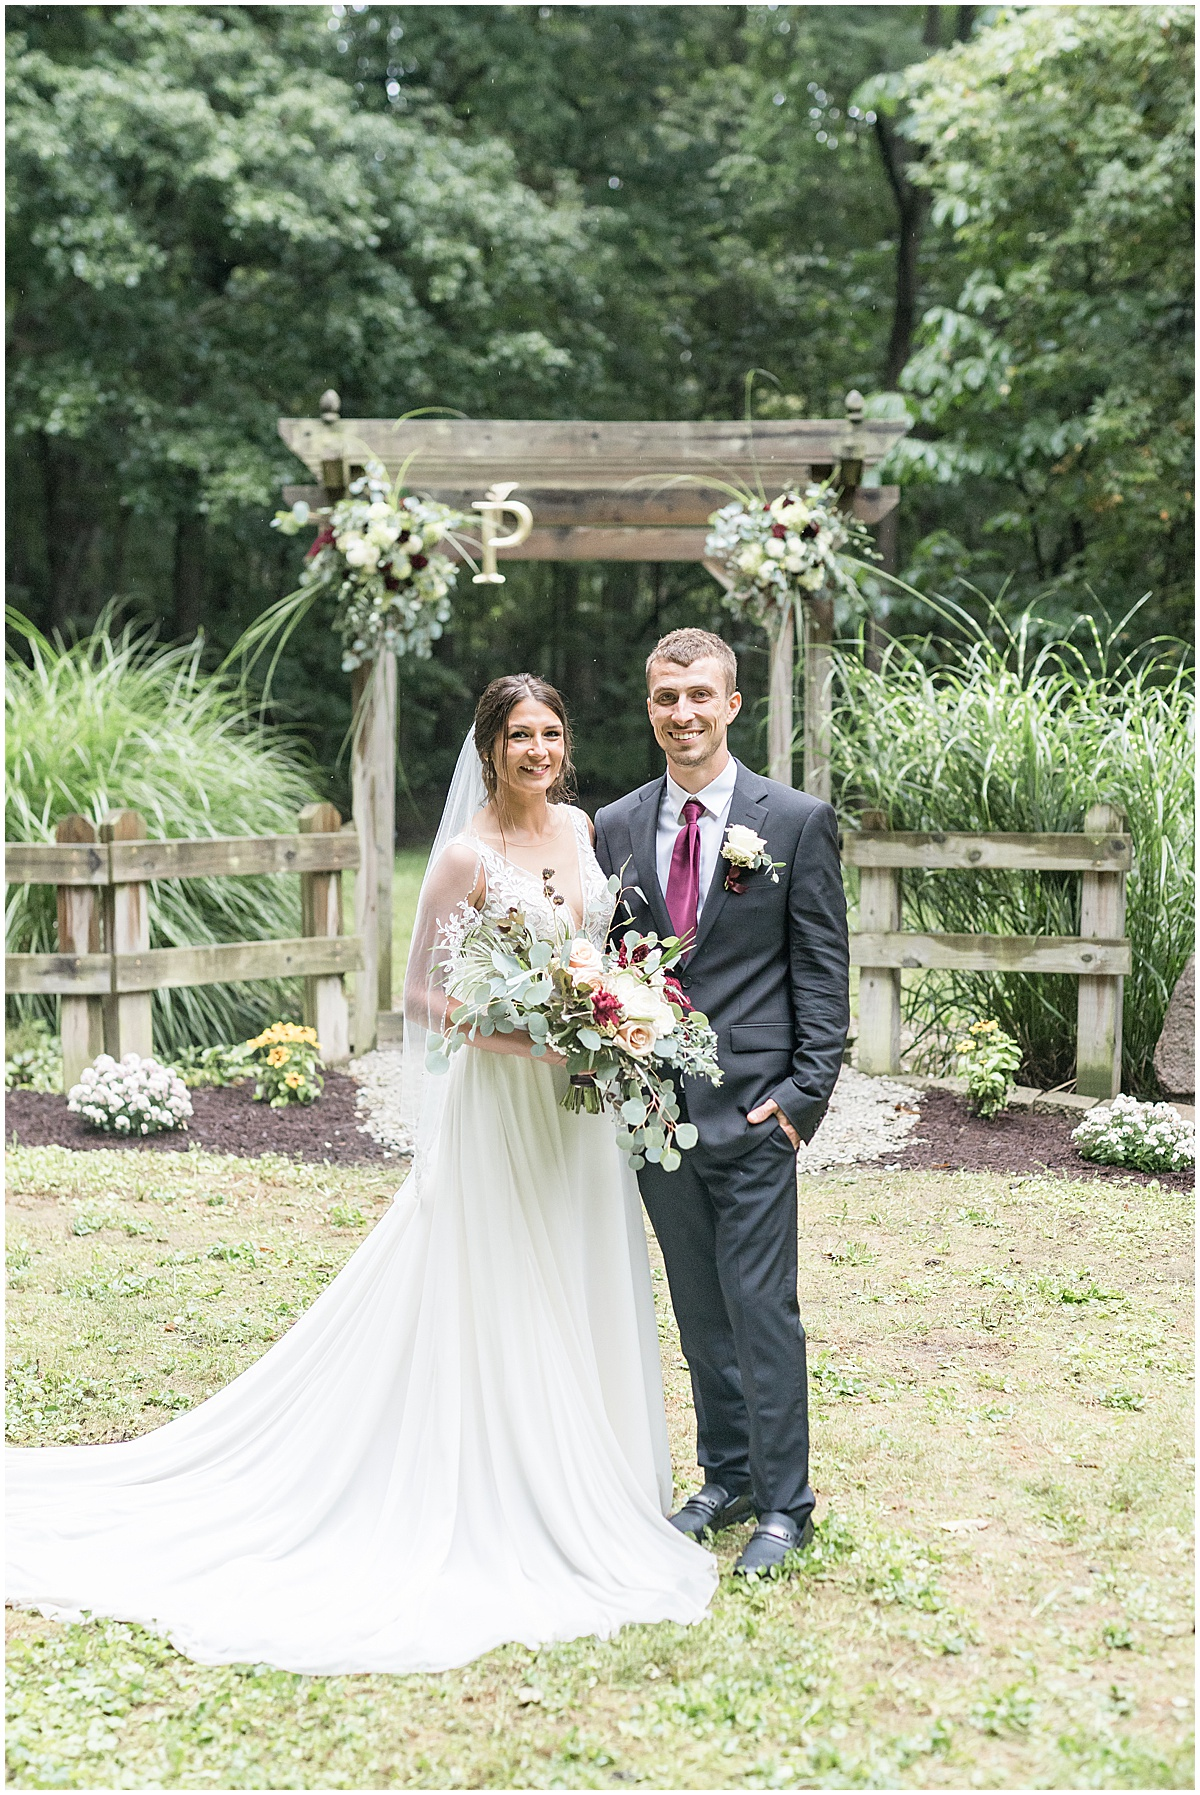 Bride and groom just married photos after Wildcat Conservation Club wedding in Mulberry, Indiana